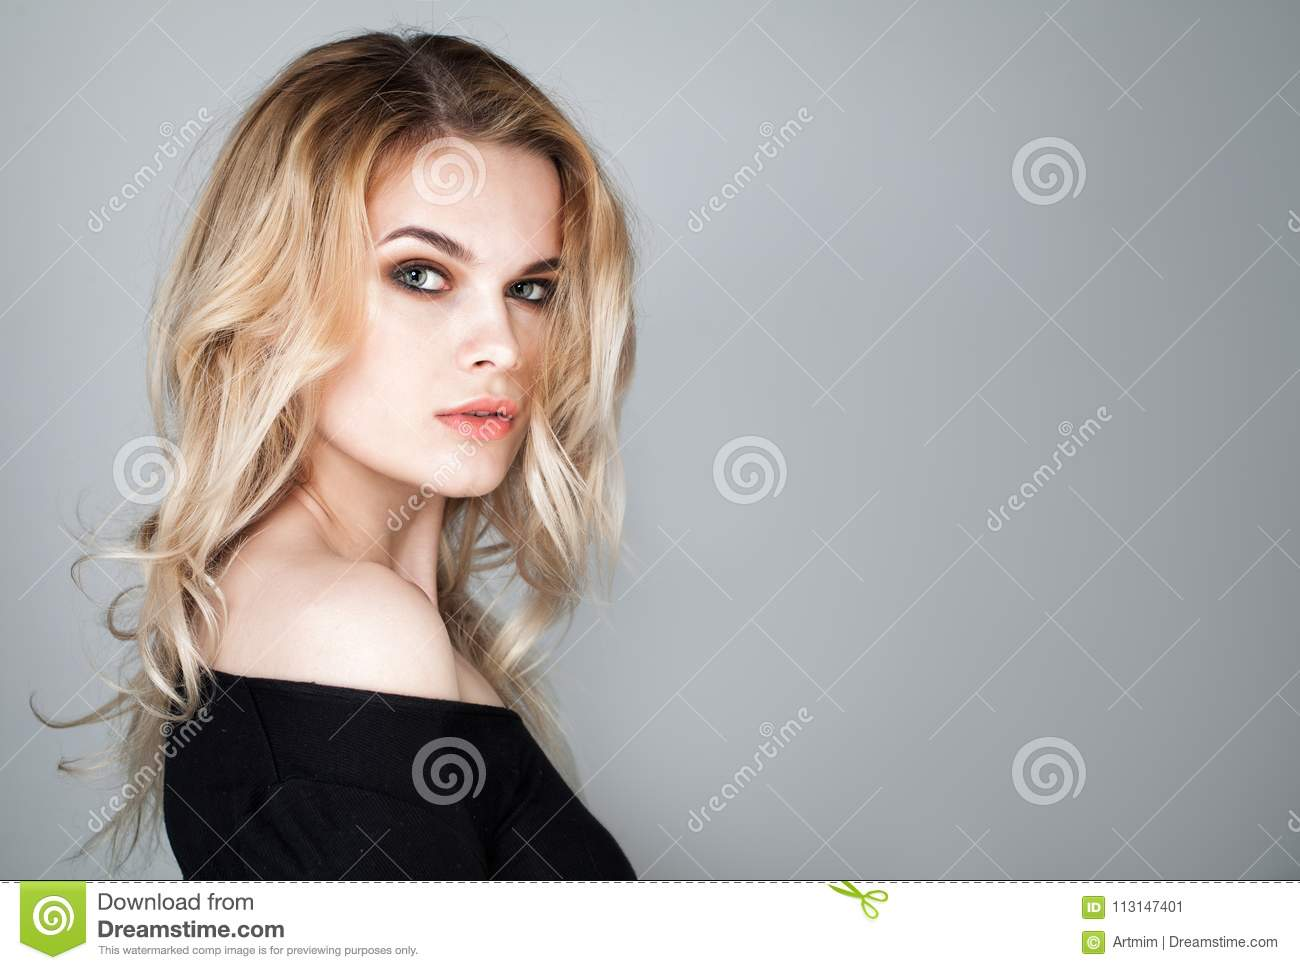 Beautiful Young Woman Face. Portrait of Cute Model